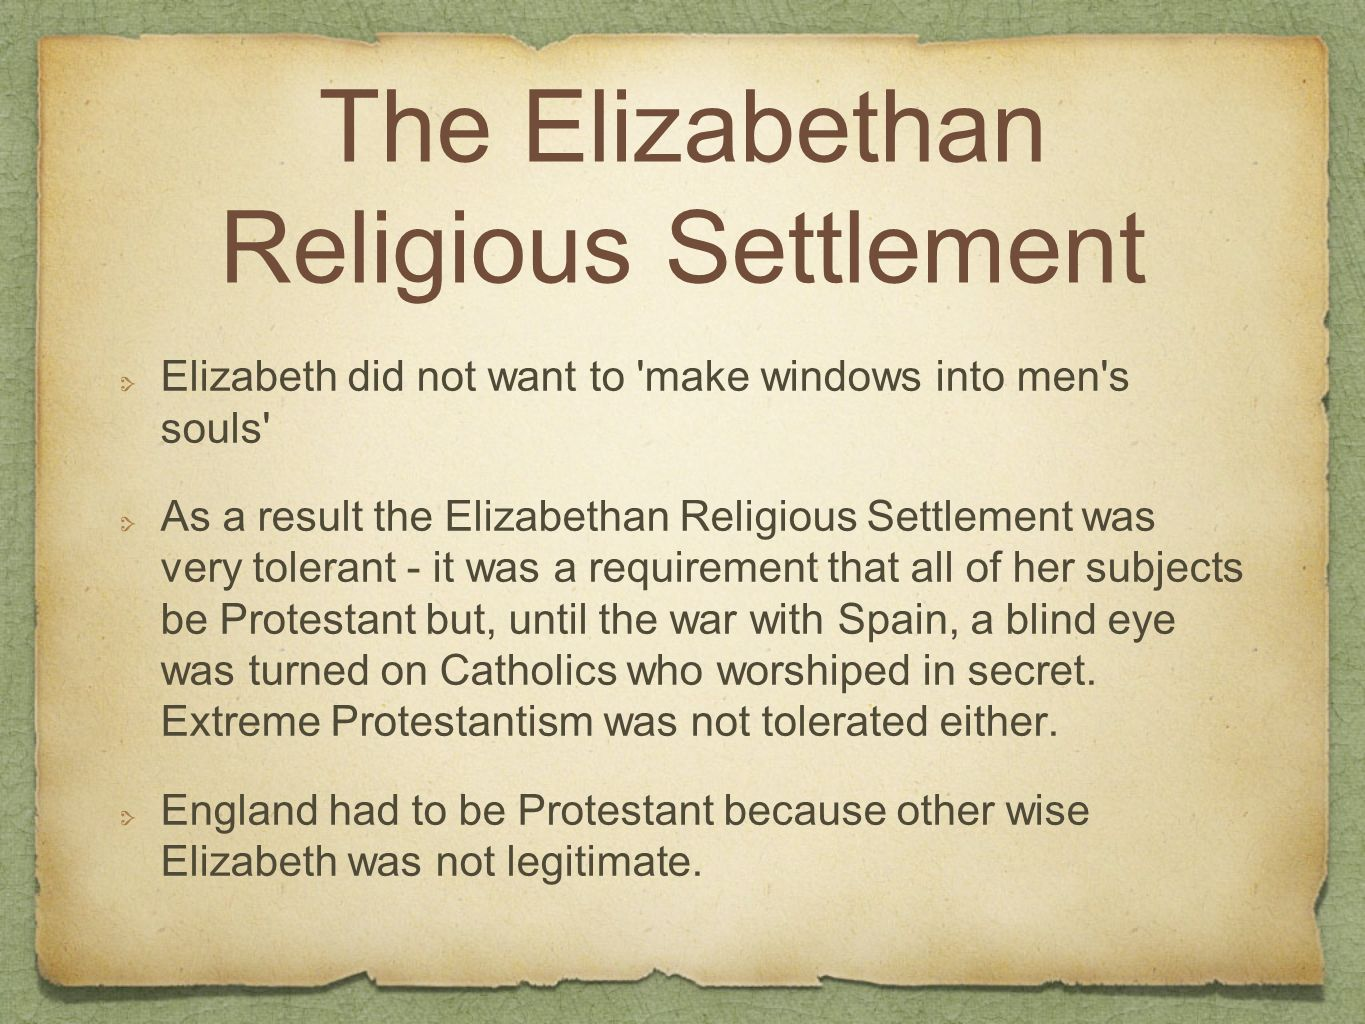 What Was the Elizabethan Religious Settlement?